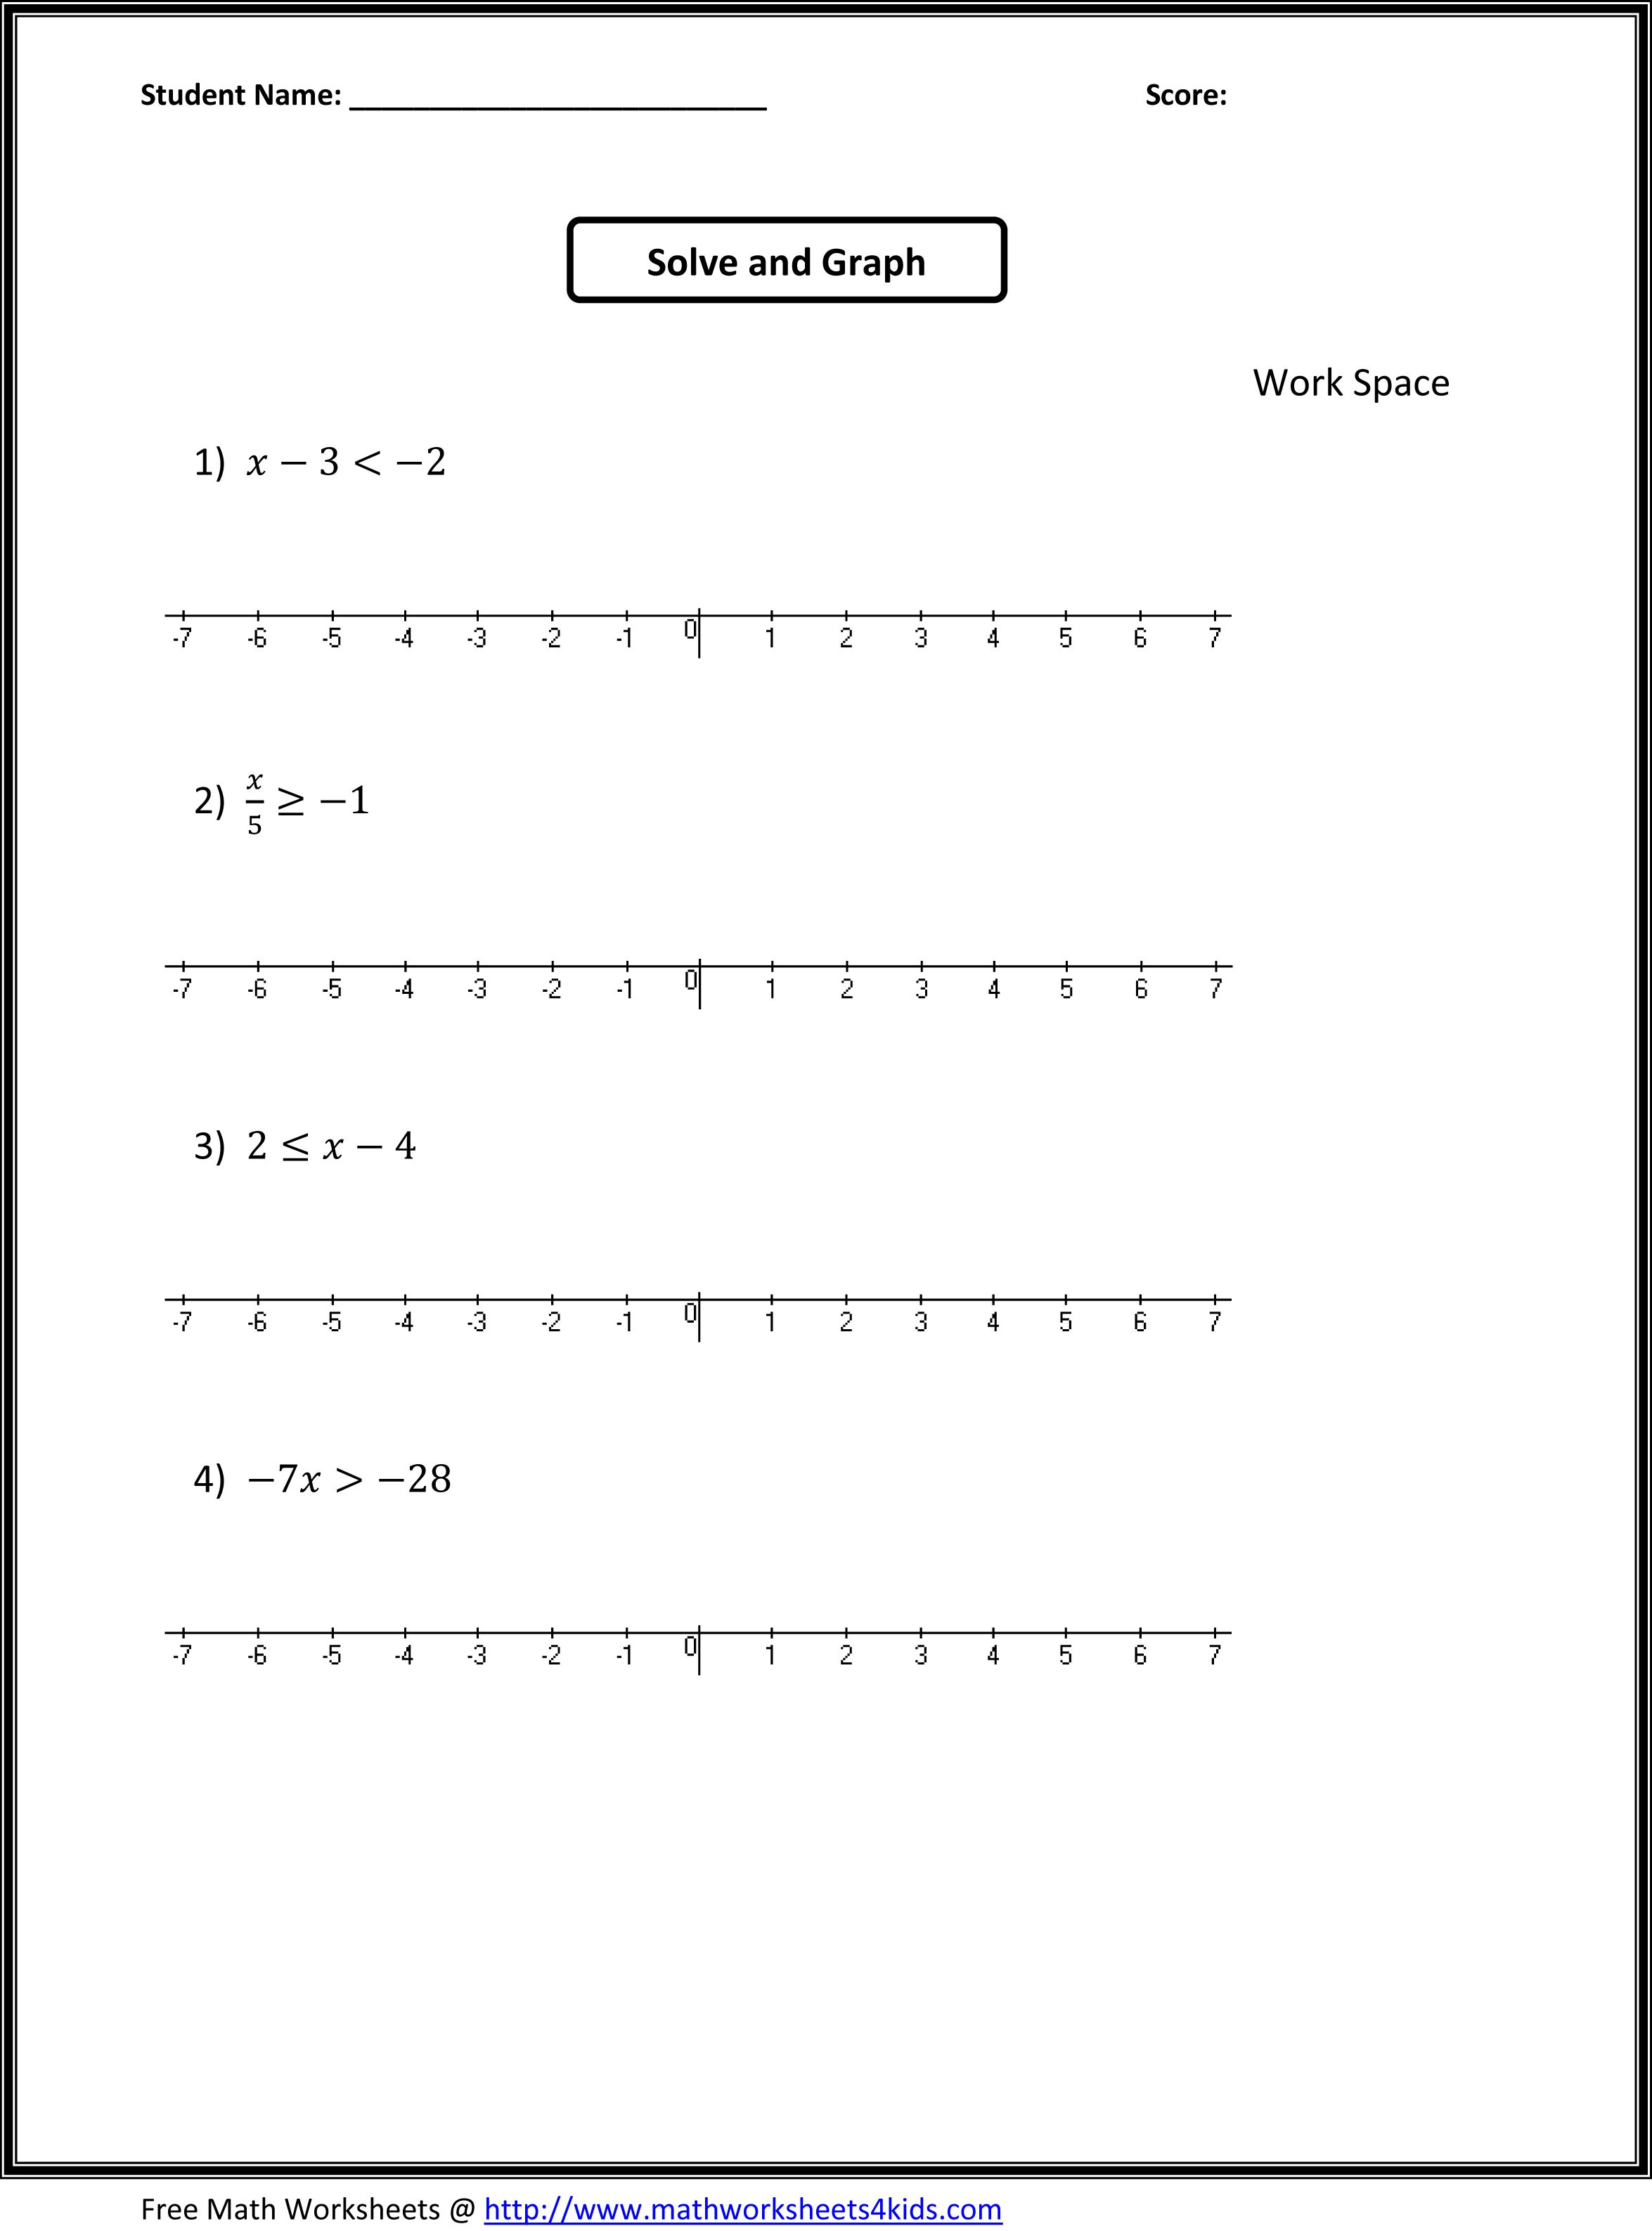 7th Grade Algebra Worksheets 7th Grade Math Worksheets – 7th Grade Math Equations Worksheets